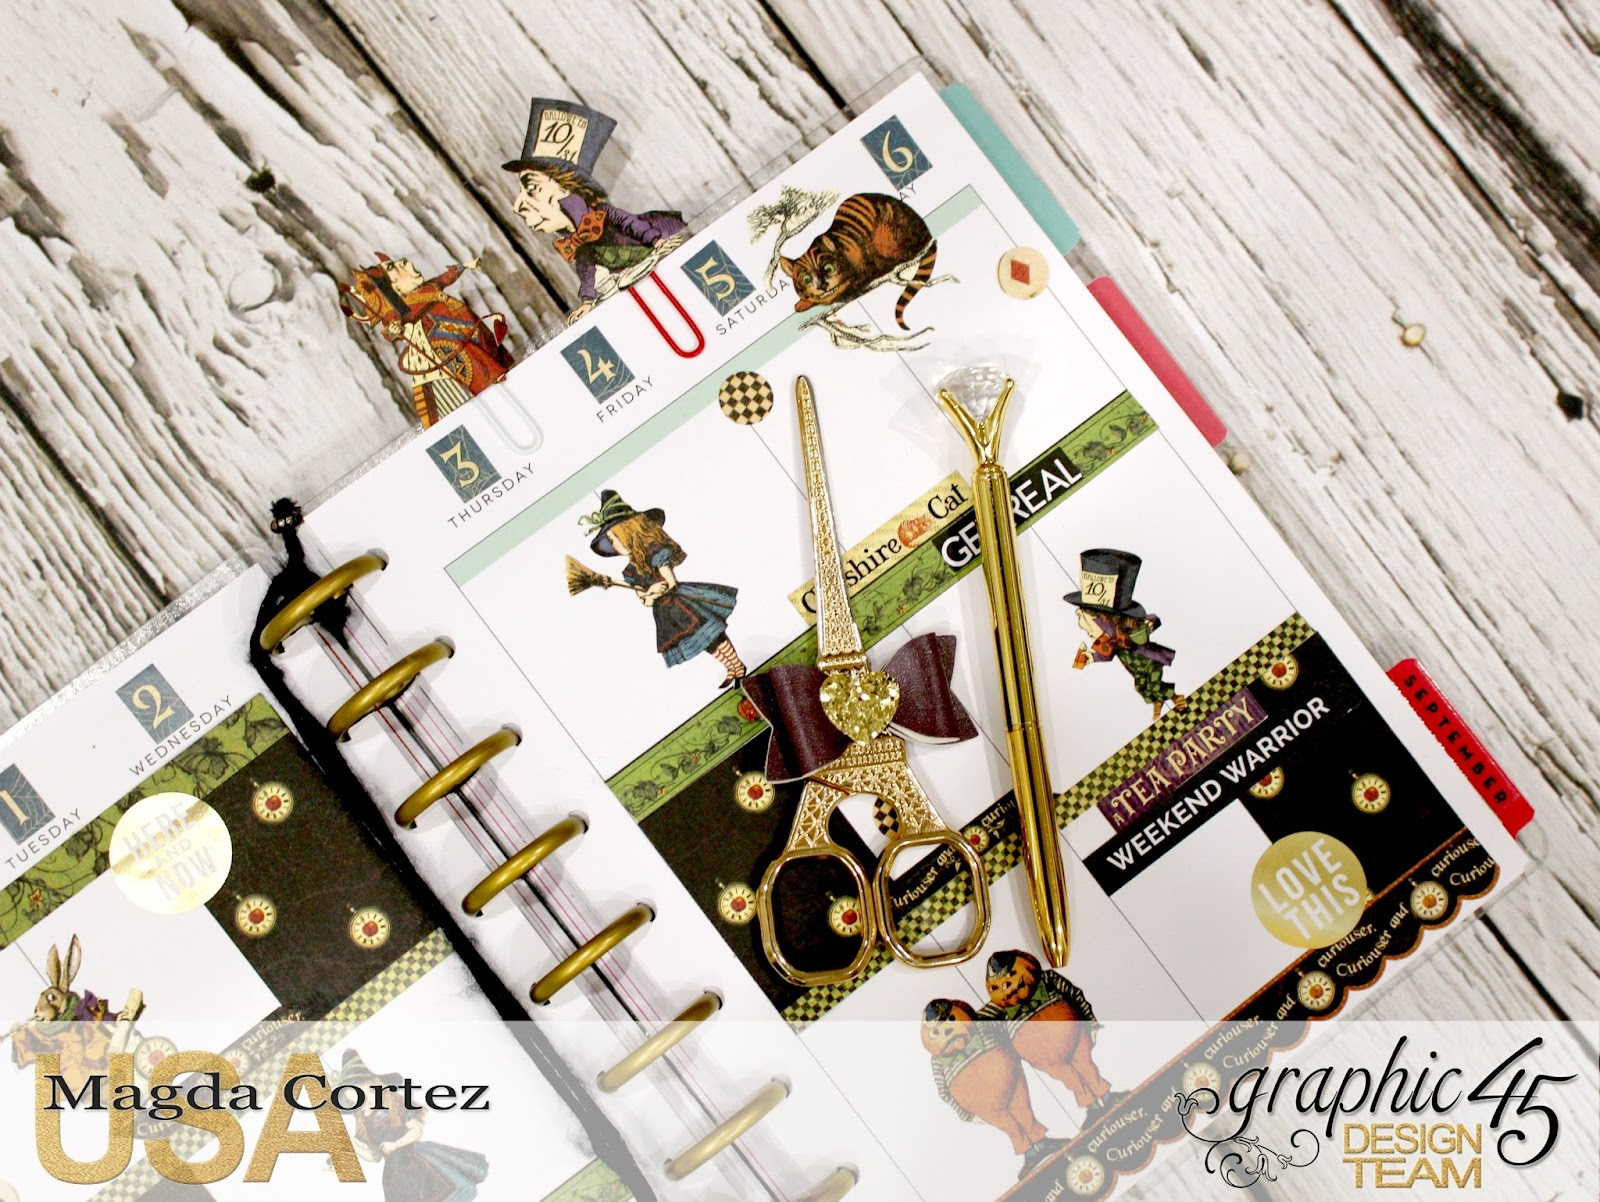 07. My G45 Planner August, Alice in Wonderland By Magda Cortez, Product By Graphic 45, Photo 07 of 26.jpg